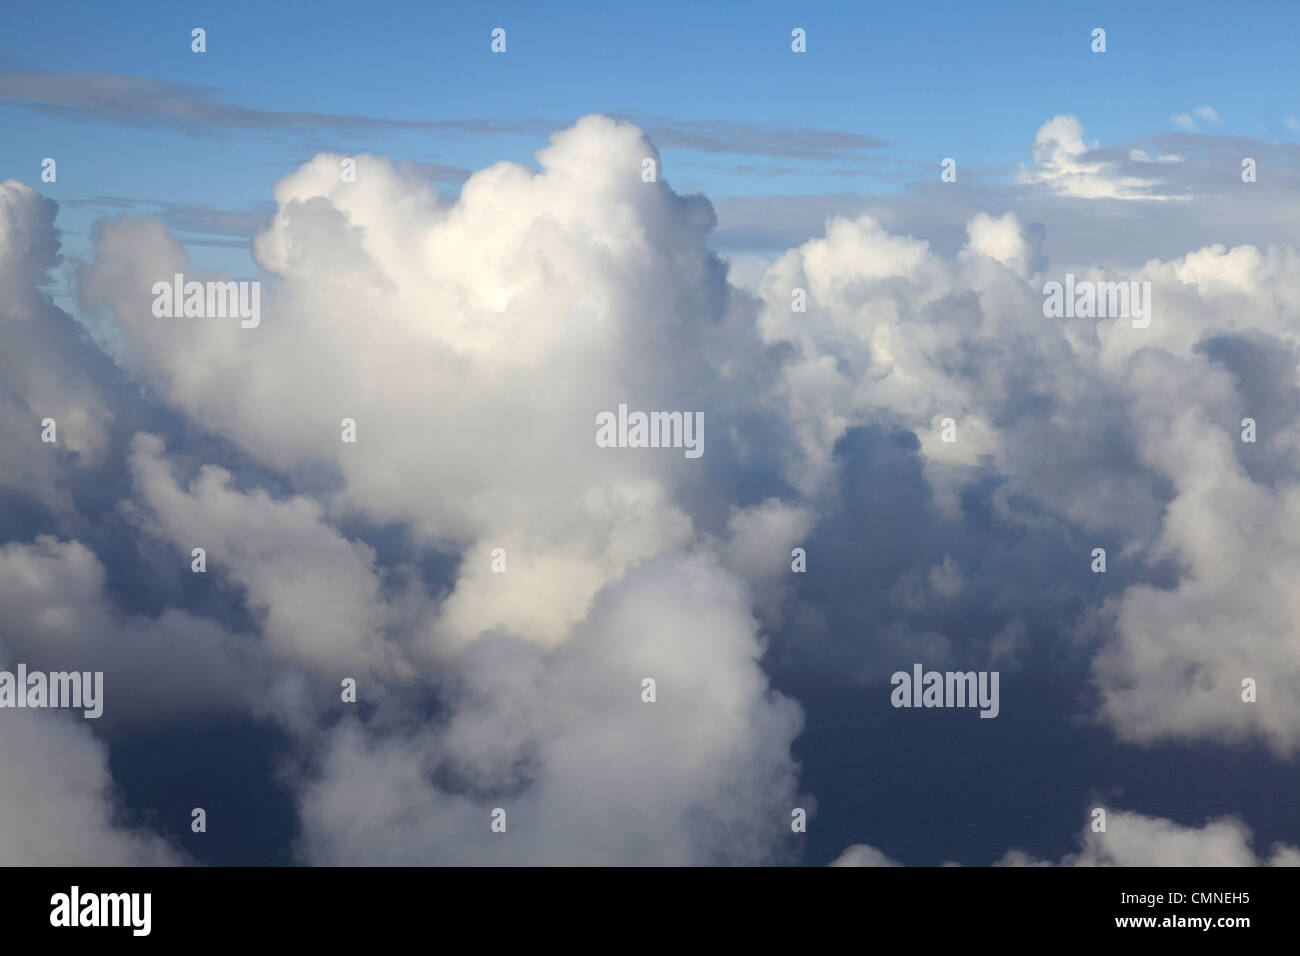 Clouds taken from an Aircraft - Stock Image